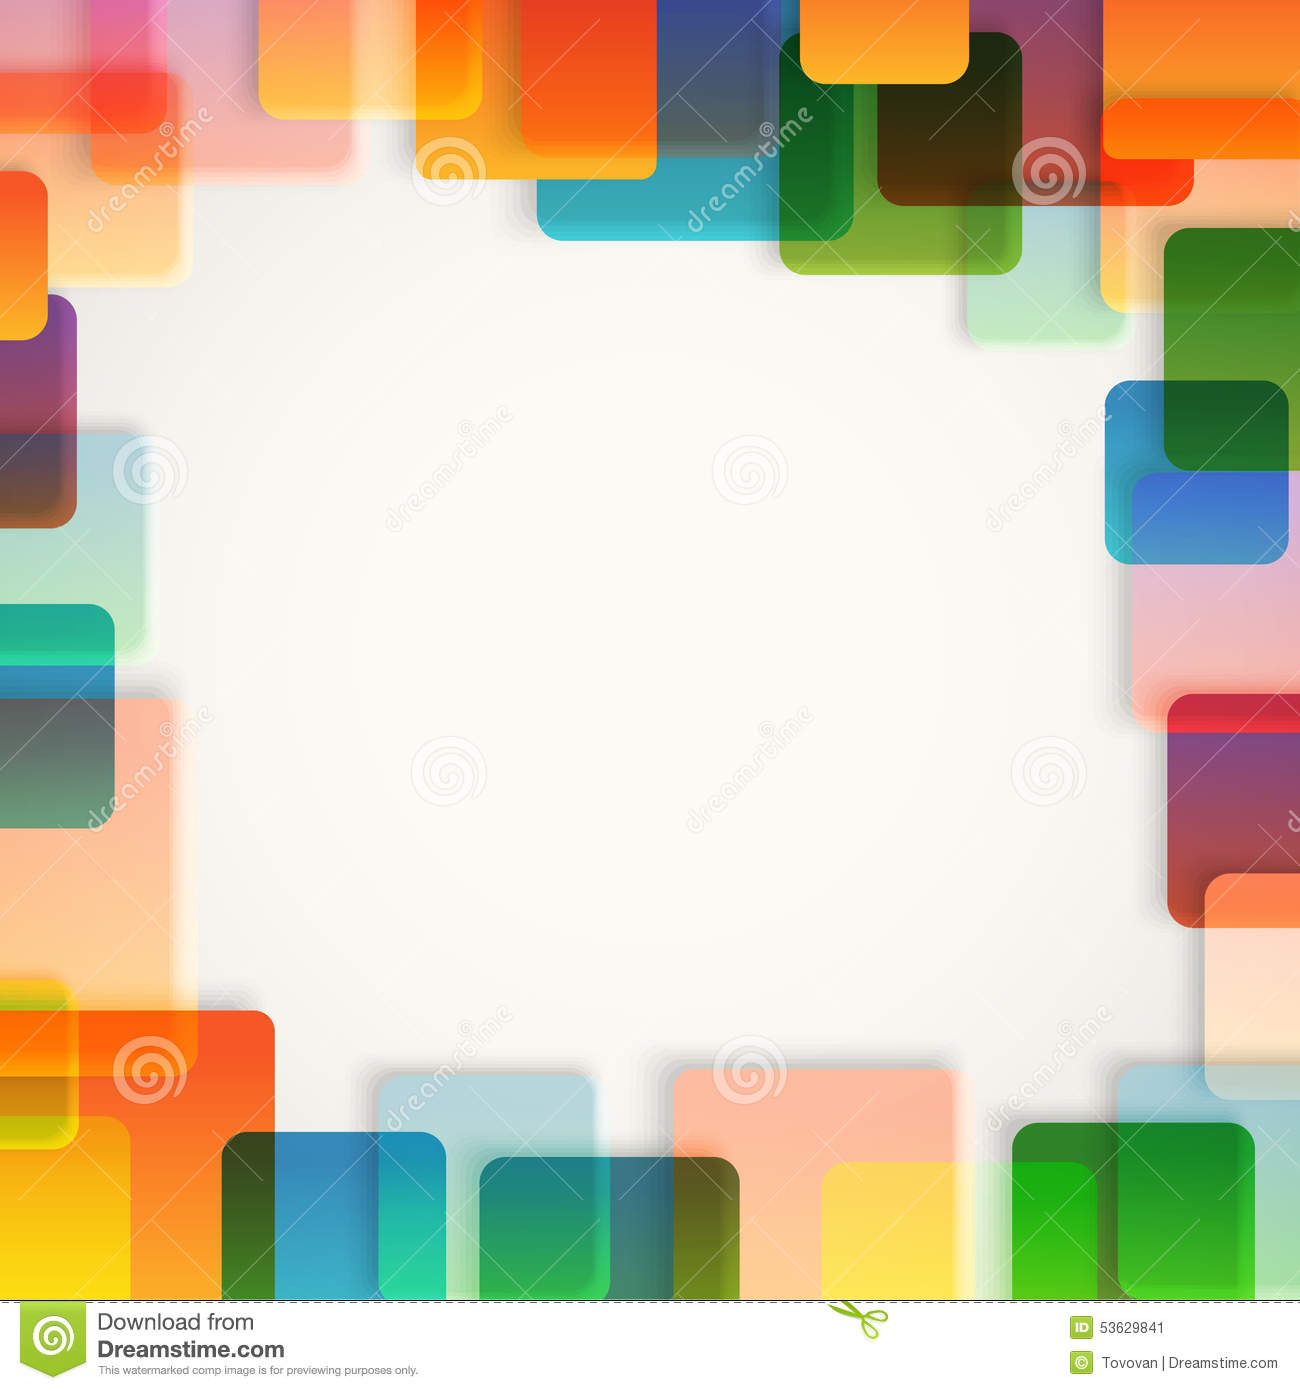 Abstract vector background of different color squares